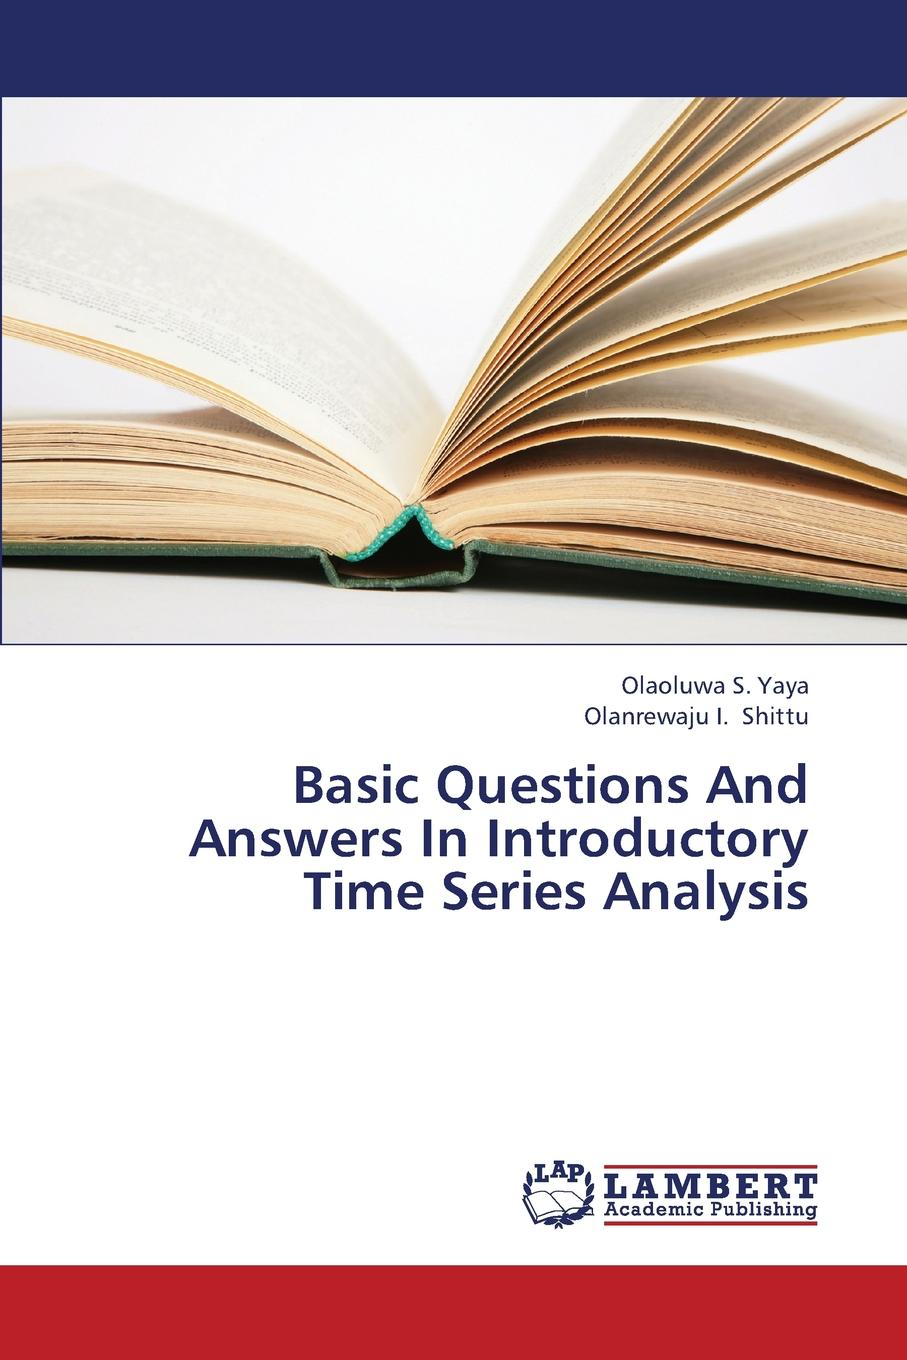 Yaya Olaoluwa S., Shittu Olanrewaju I. Basic Questions and Answers in Introductory Time Series Analysis plumbing questions and answers pdf